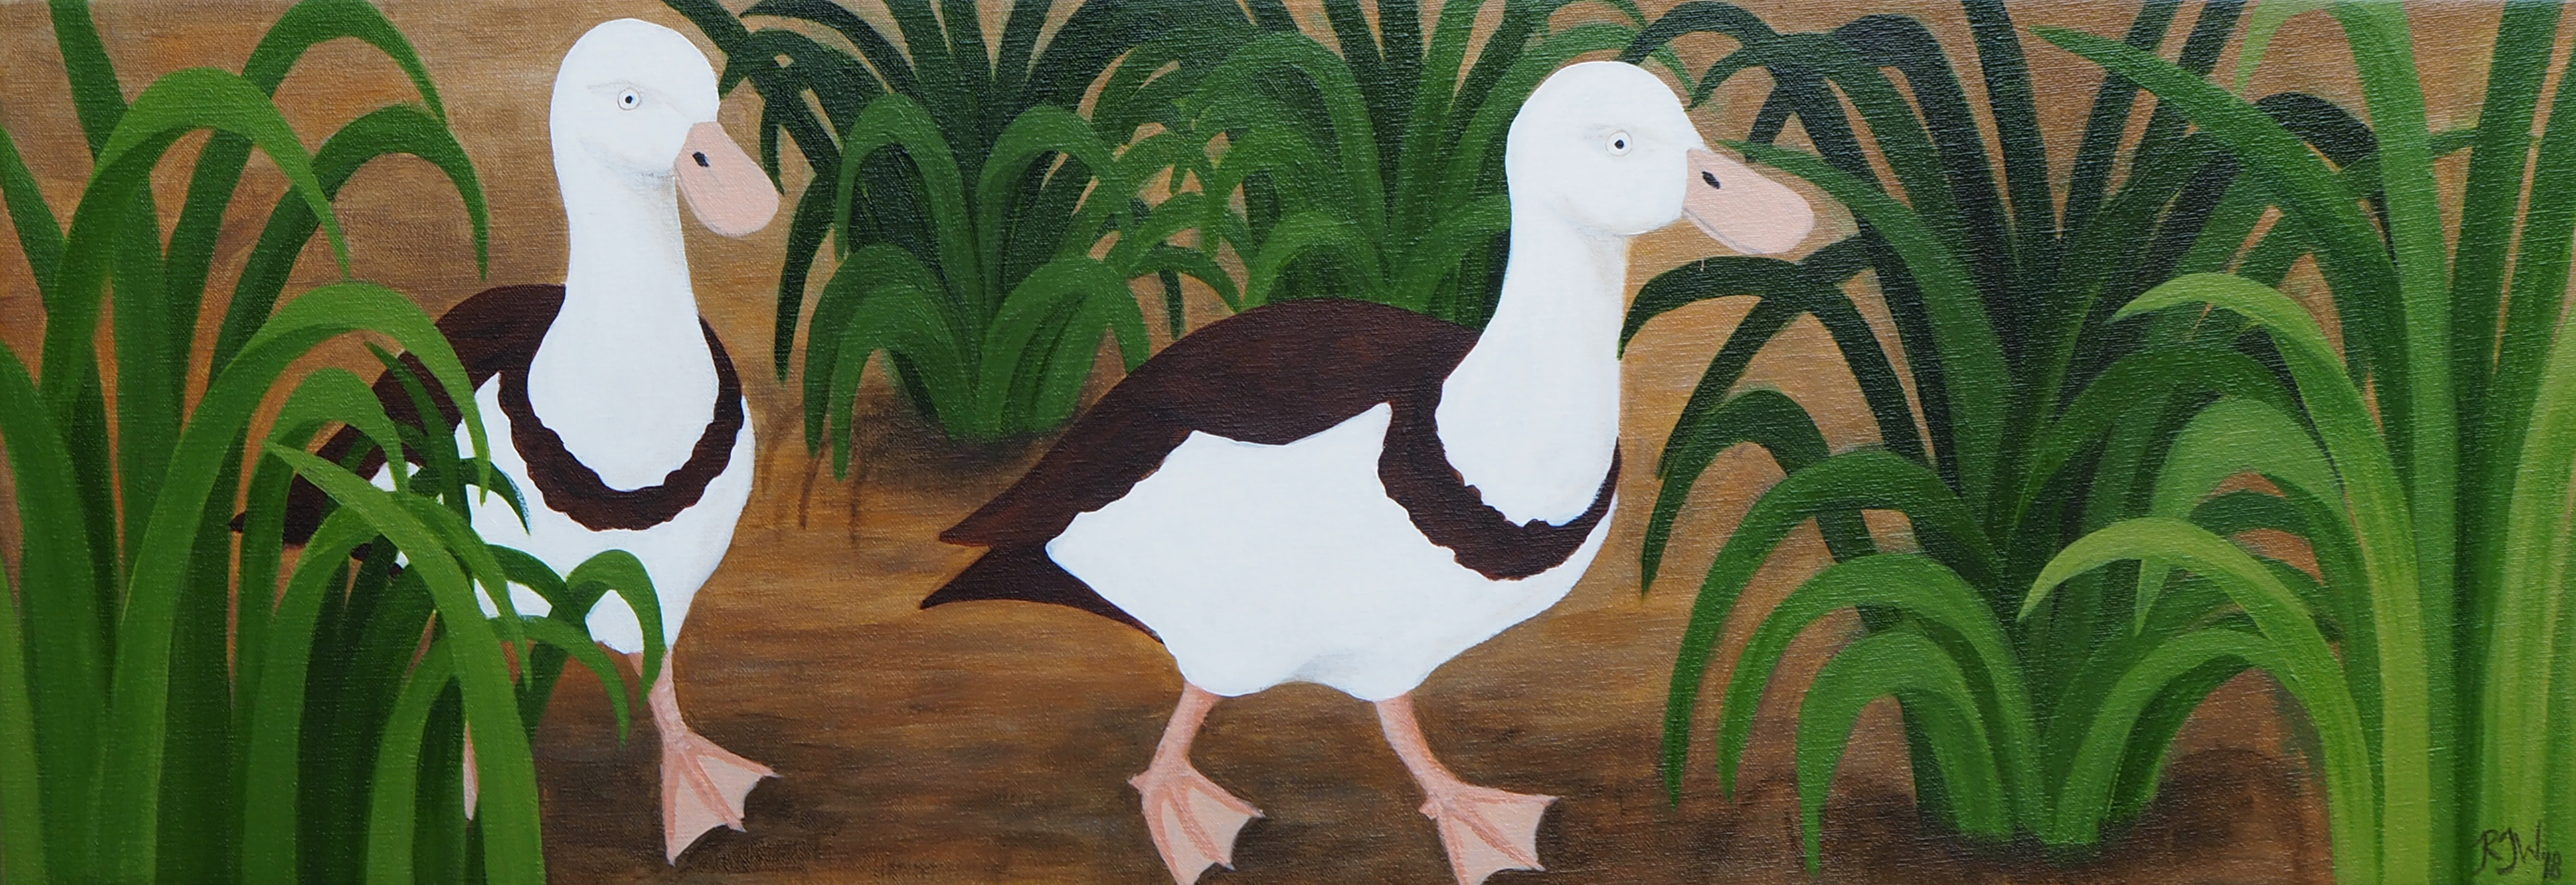 Rajah Shelducks